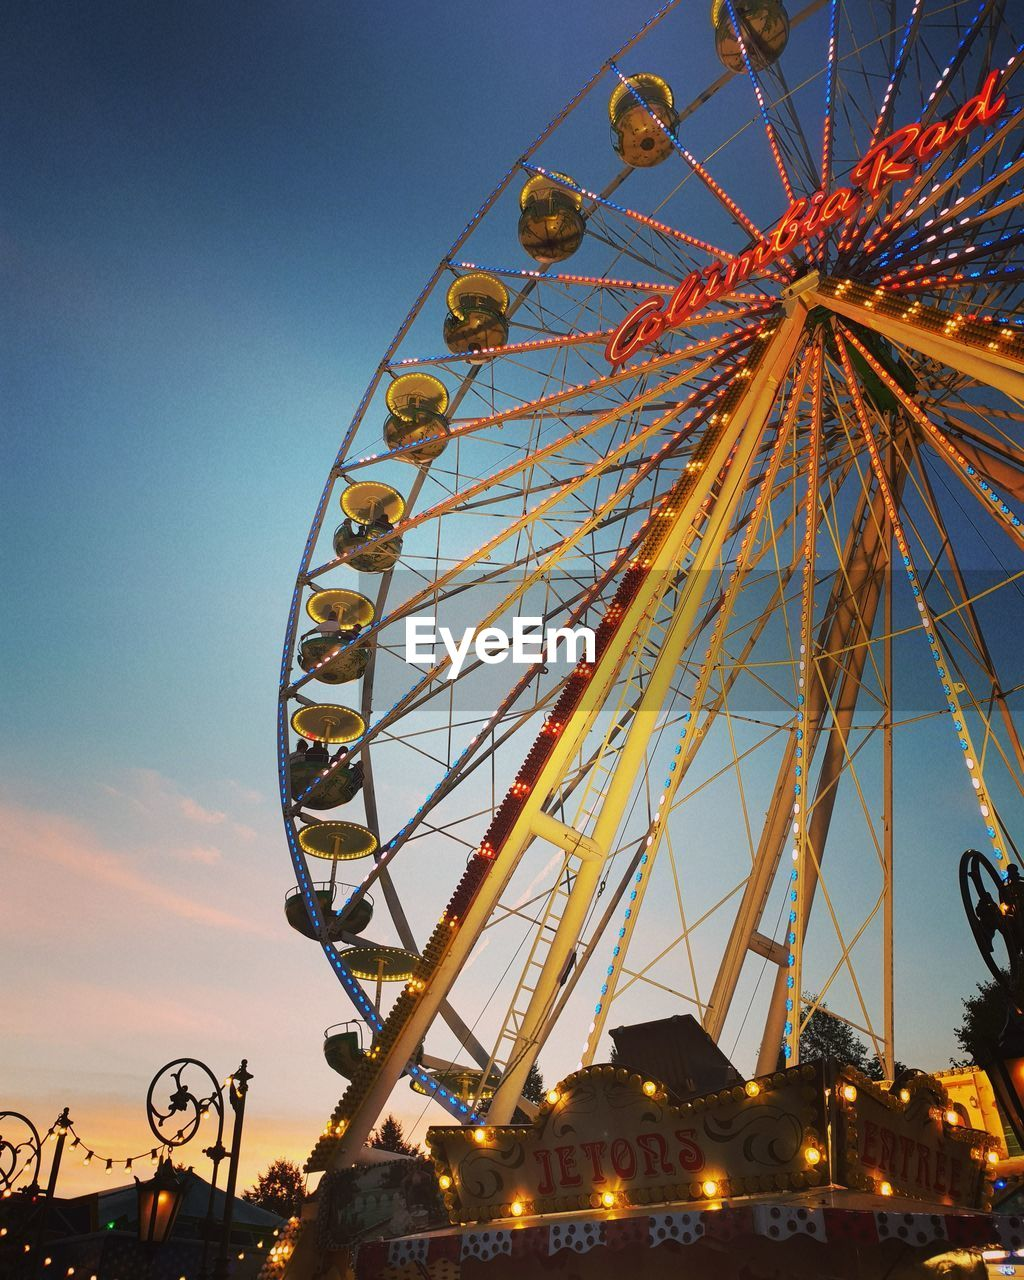 amusement park, amusement park ride, arts culture and entertainment, sky, ferris wheel, low angle view, leisure activity, fairground, no people, nature, large, geometric shape, architecture, shape, built structure, circle, carnival, outdoors, clear sky, blue, carnival - celebration event